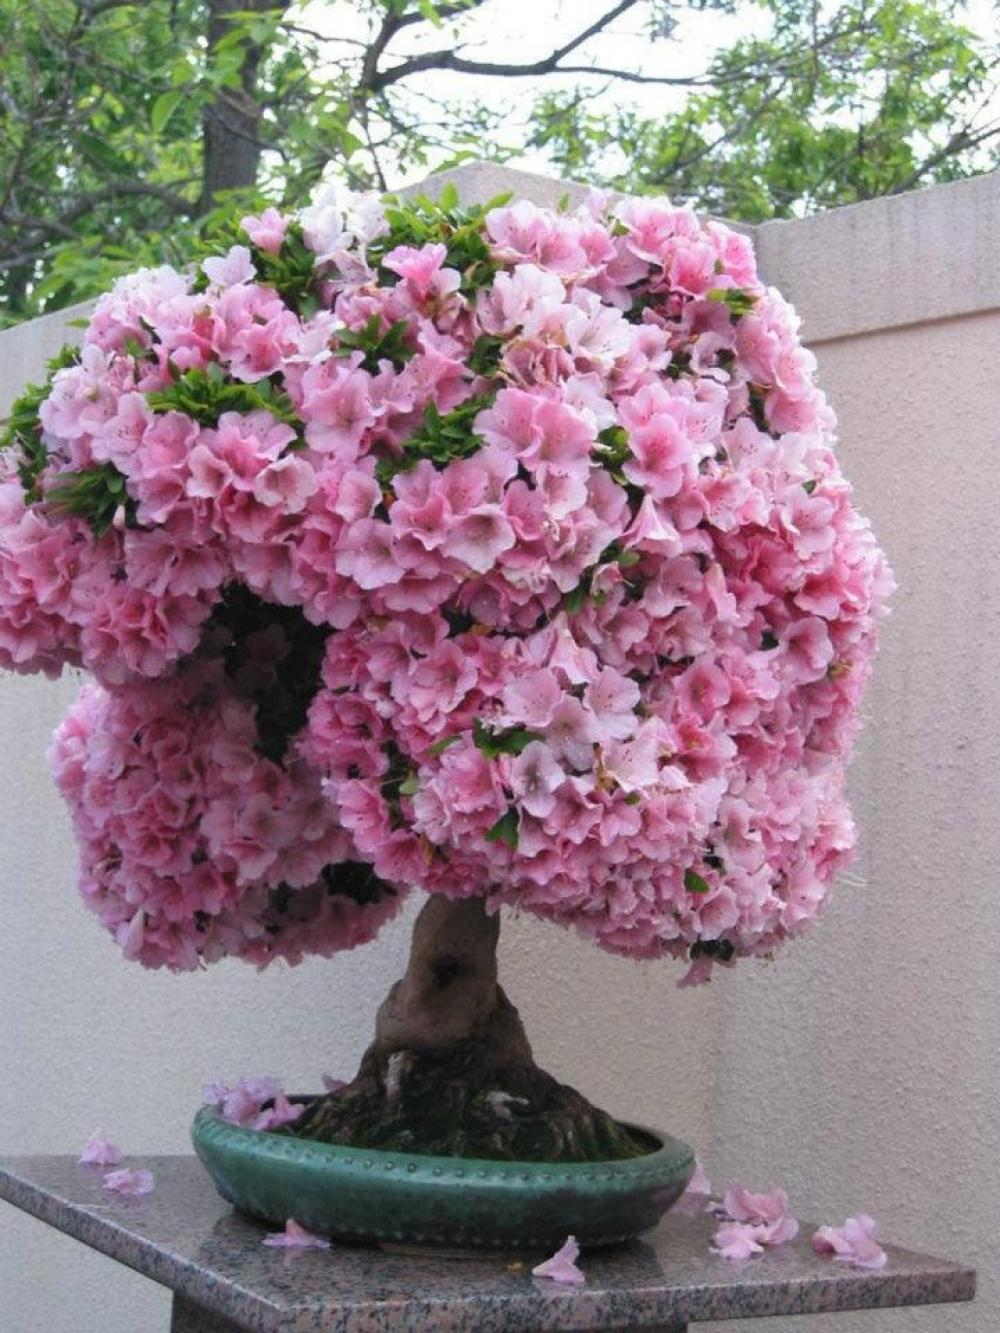 54-Unique-And-Attractive-Bonsai-Tree-Design-Ideas-Beautiful-Pink-Bonsai-Flower-Collection-For-Interiors-Decoration